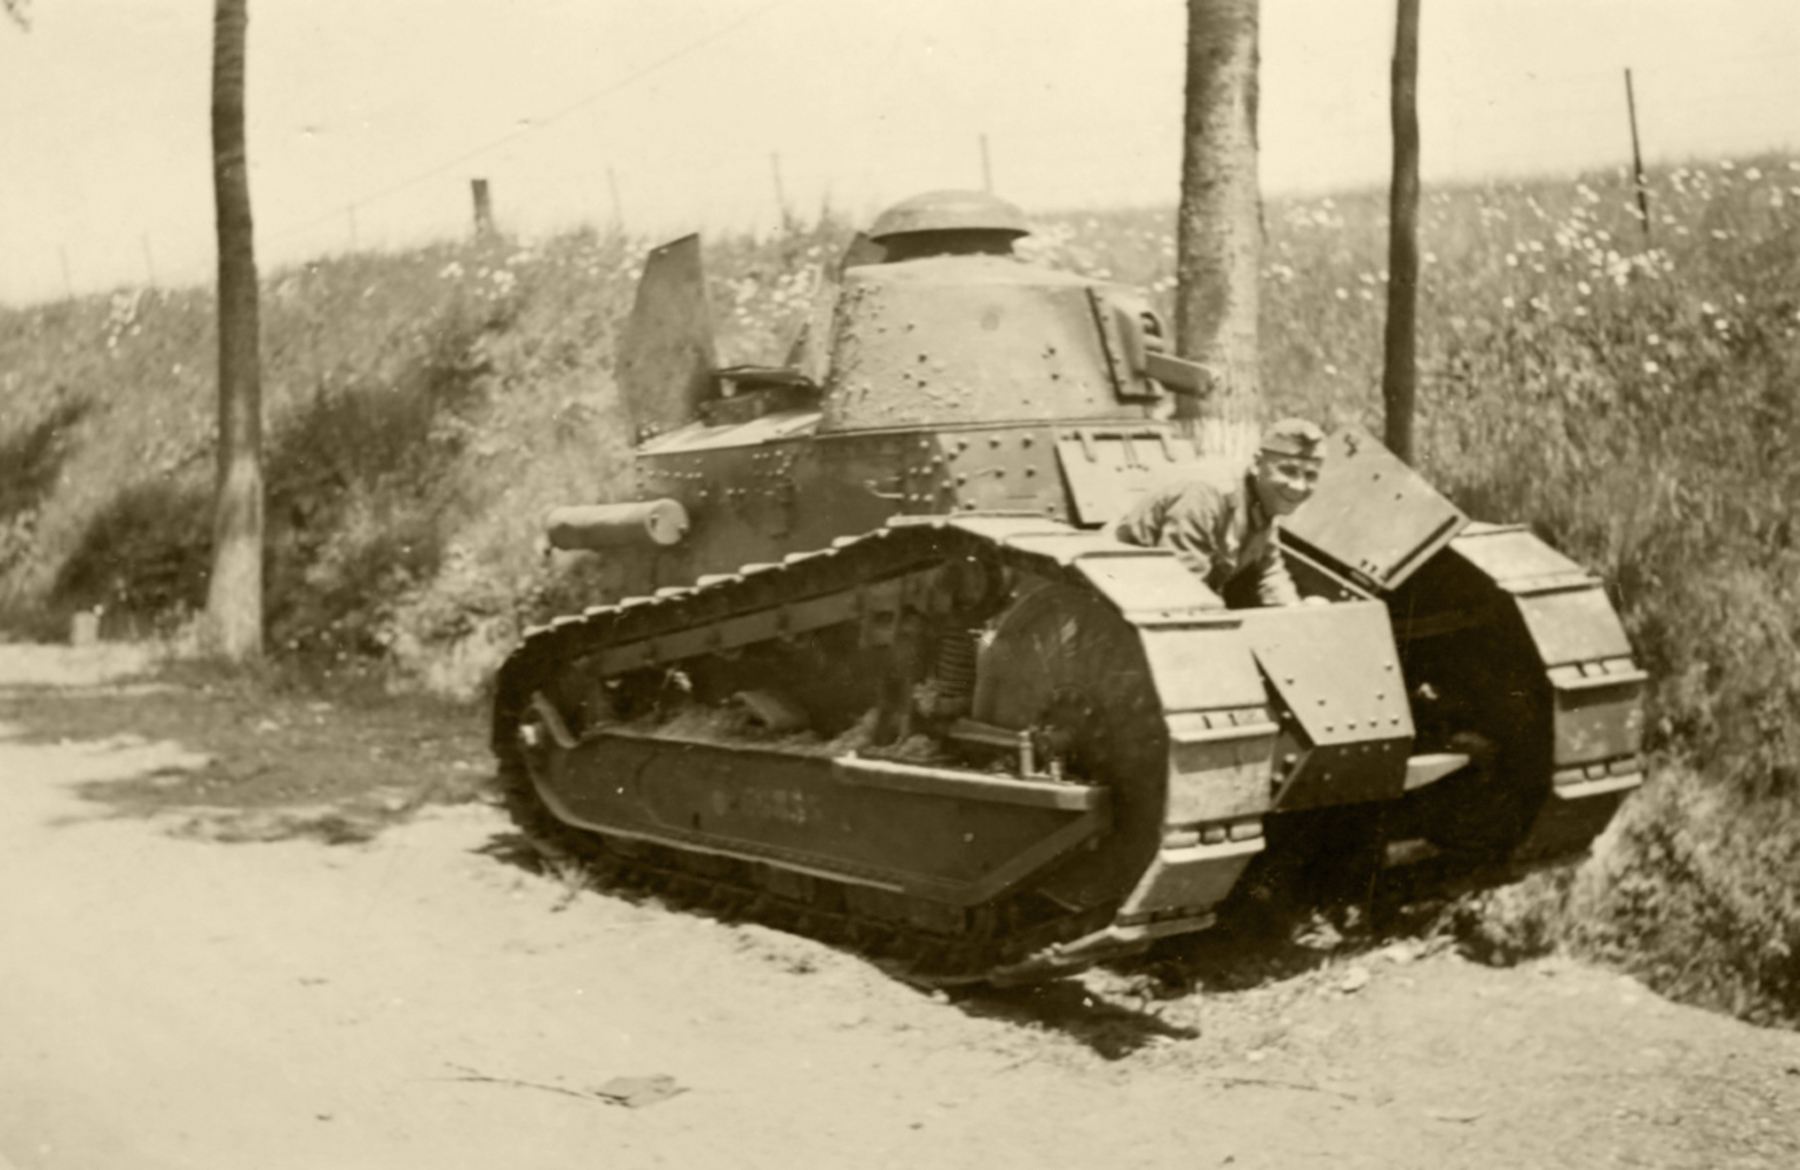 French Army Renault FT 17 sn83208 captured during the Battle of France 1940 ebay 01